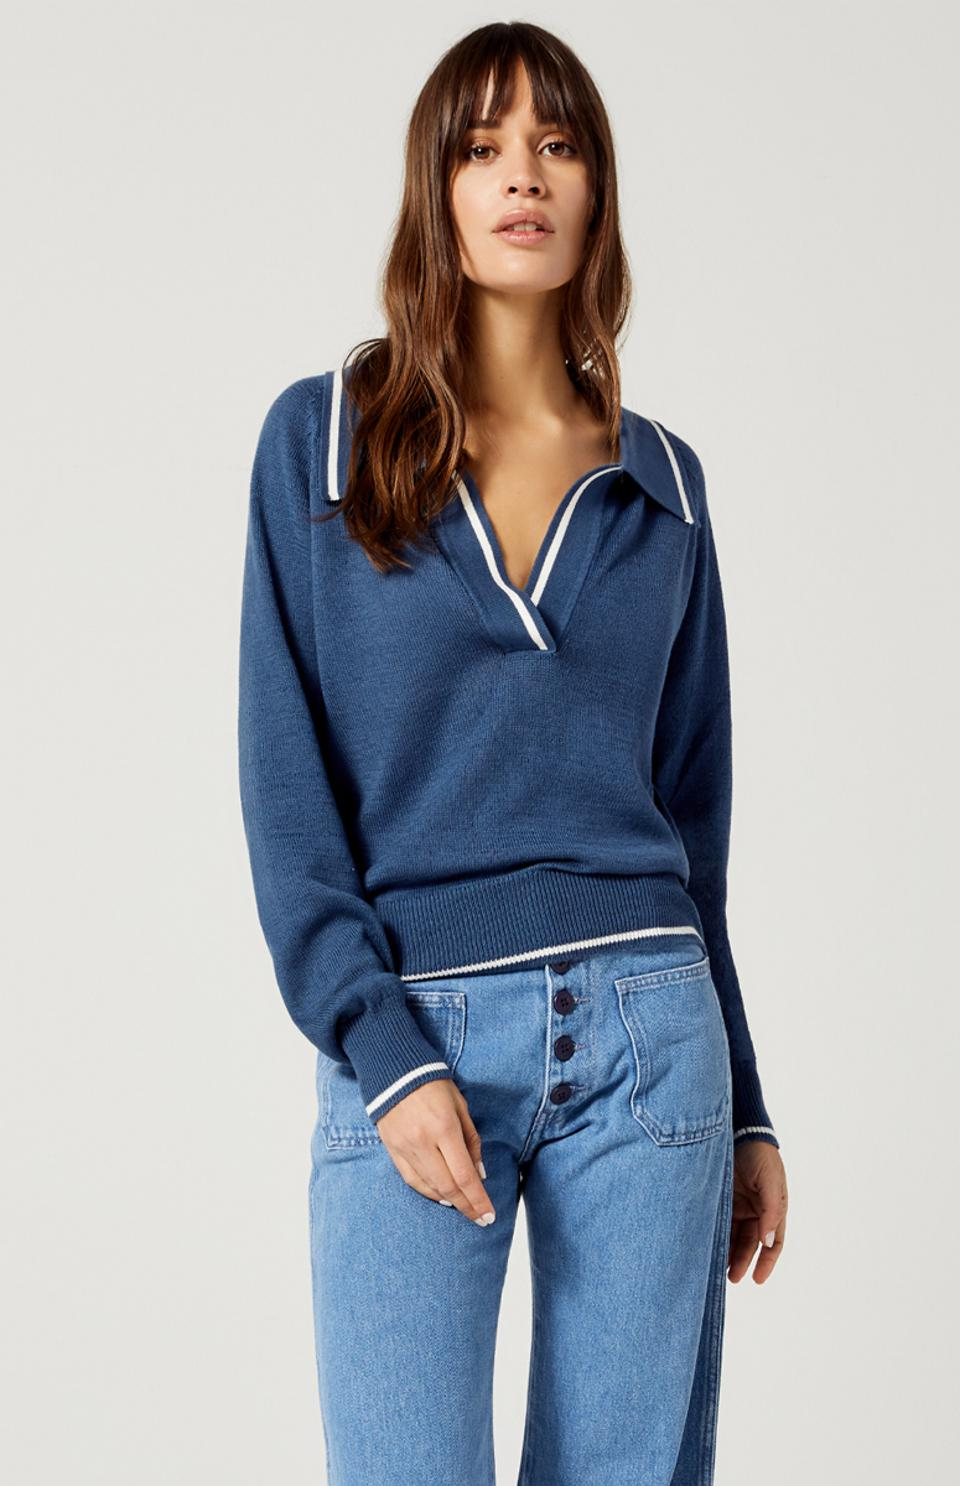 Veronica Polo Sweater by Alp N Rocks Late Summer/Early Fall Collection